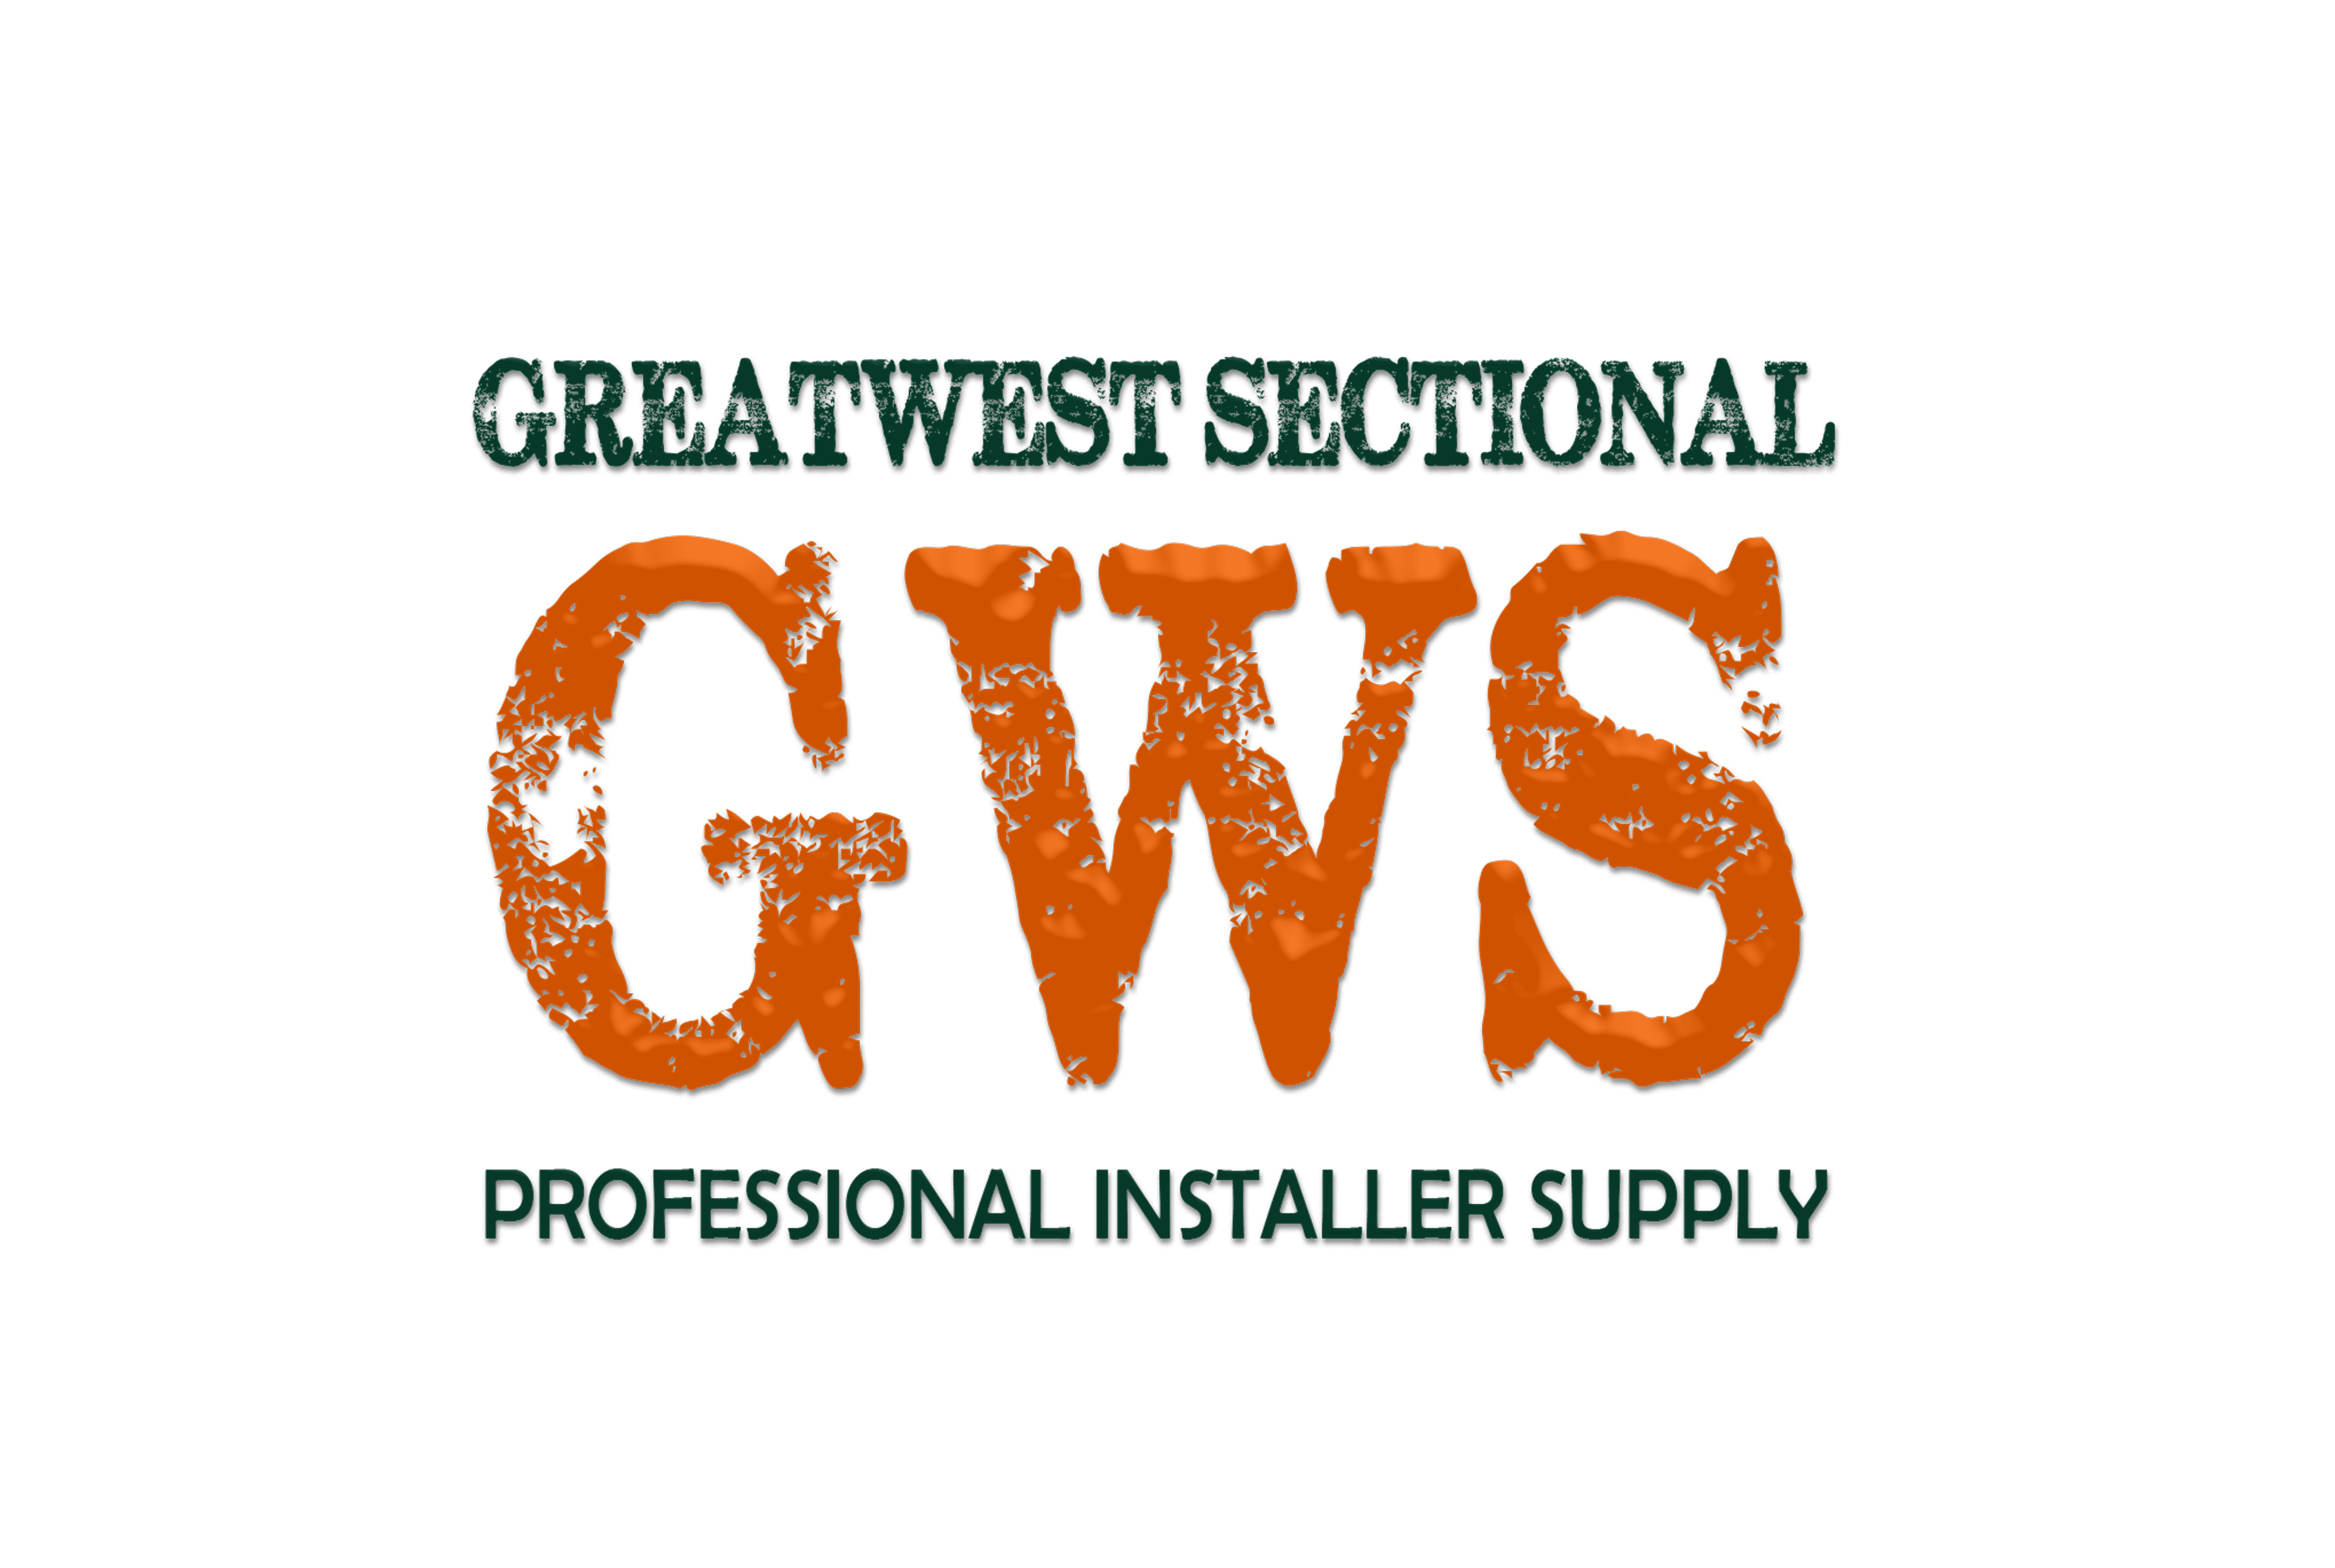 Greatwest Sectional